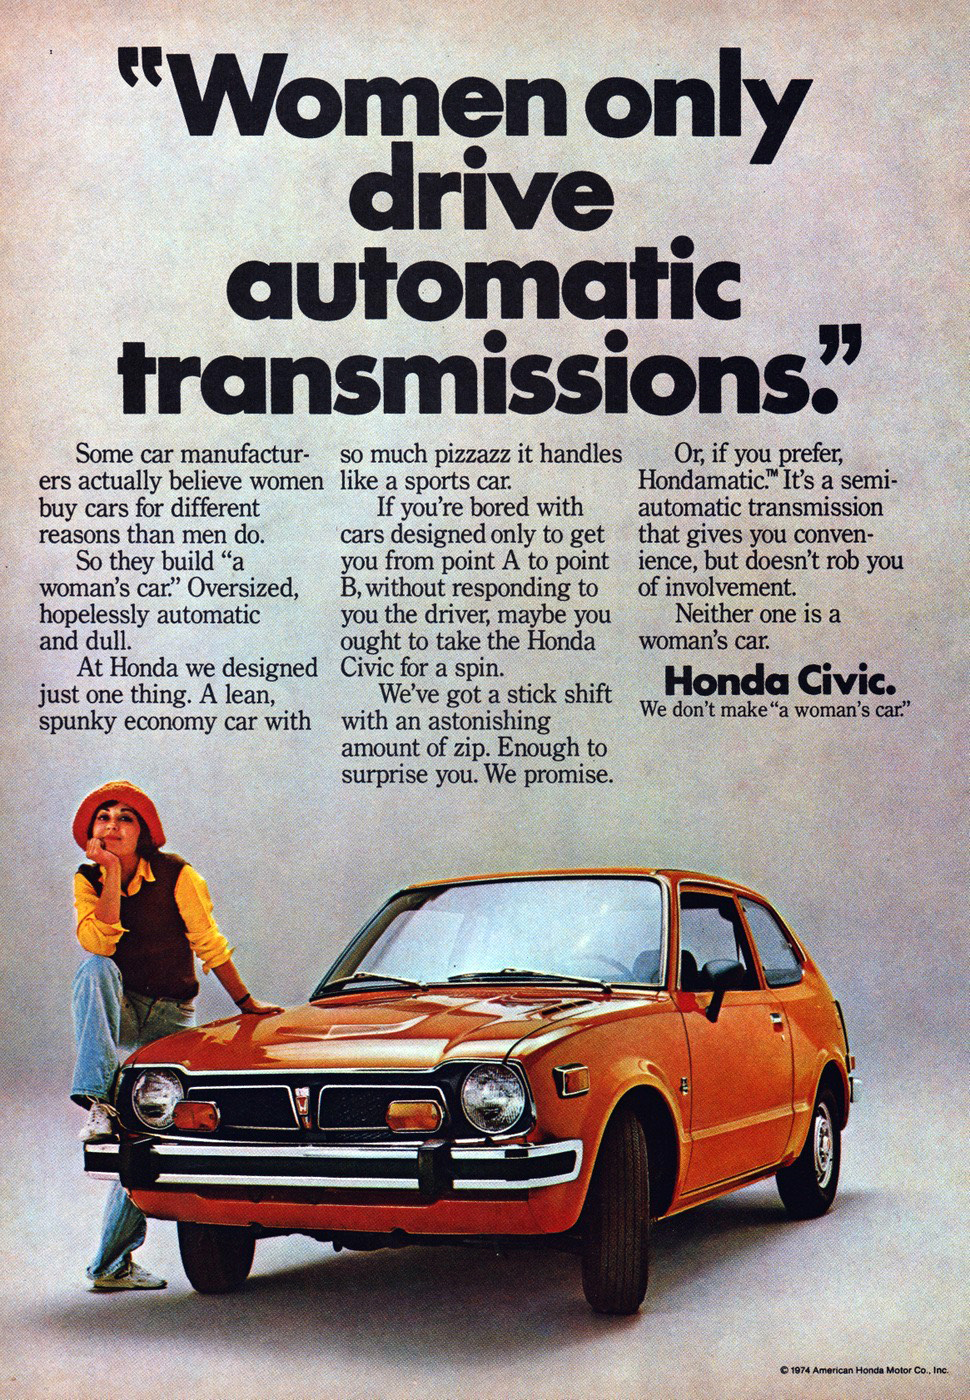 "Honda Civic Not A Womans Car? 1974 Ad. Stock Number: 19243. Women only drive automatic transmissions. Some car manufacturers actually believe women buy cars for different reasons than men do. So they build ""a women's car"". Oversized, hopelessly automatic and dull. At Honda we designed just one thing. A lean, spunky economy car with so much pizzazz it handles like a sports car. Honda Civic. We don't make ""a women's car"". Hondamatic"